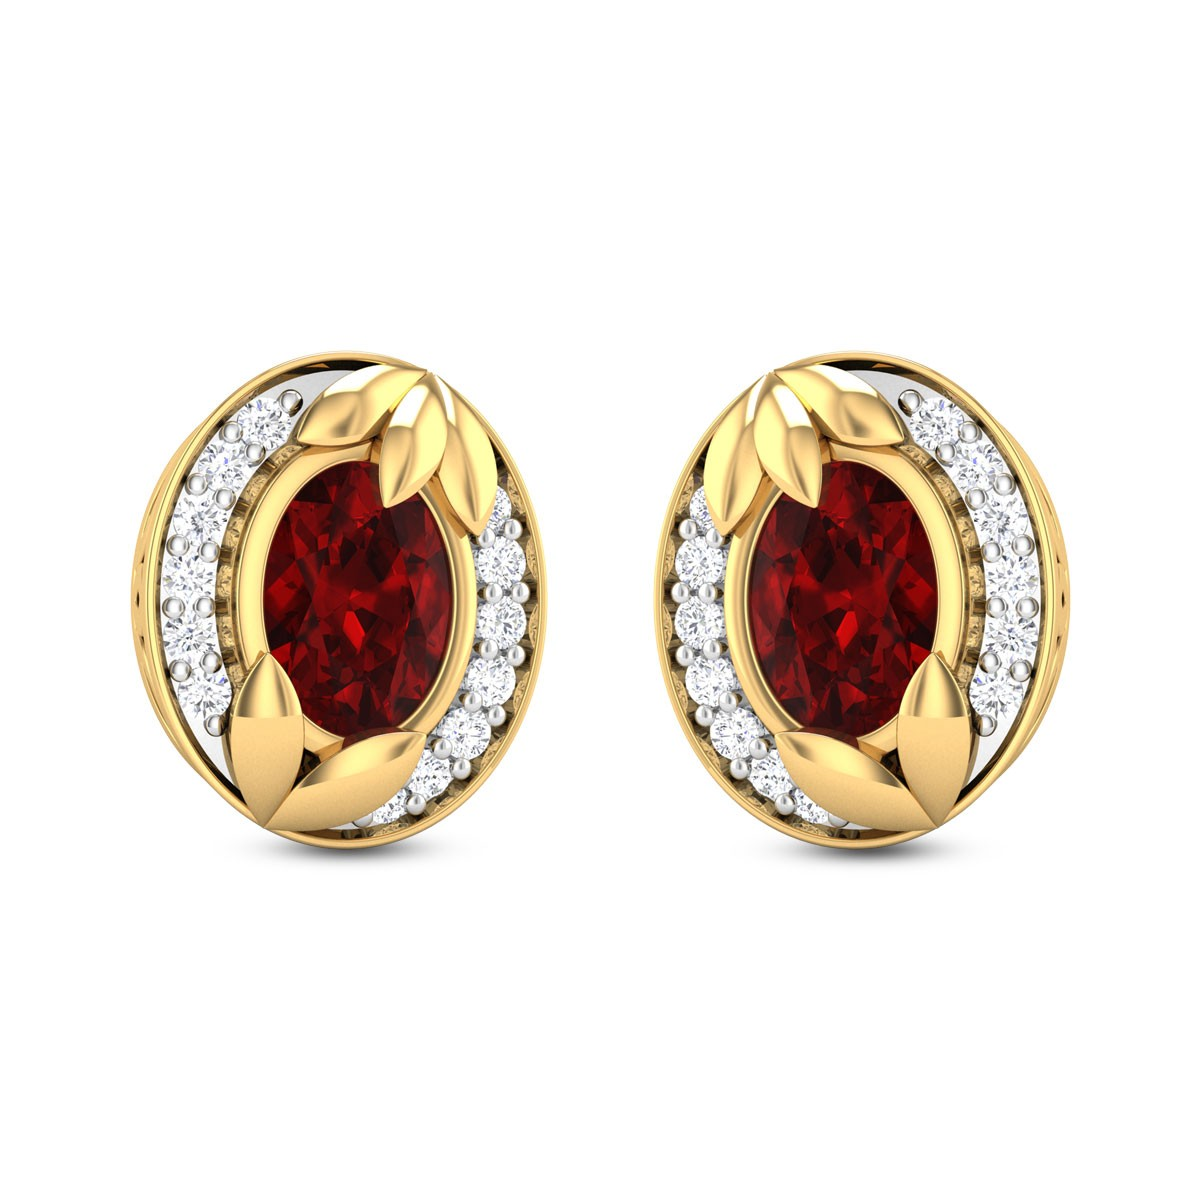 Nalinadala Stud Earrings